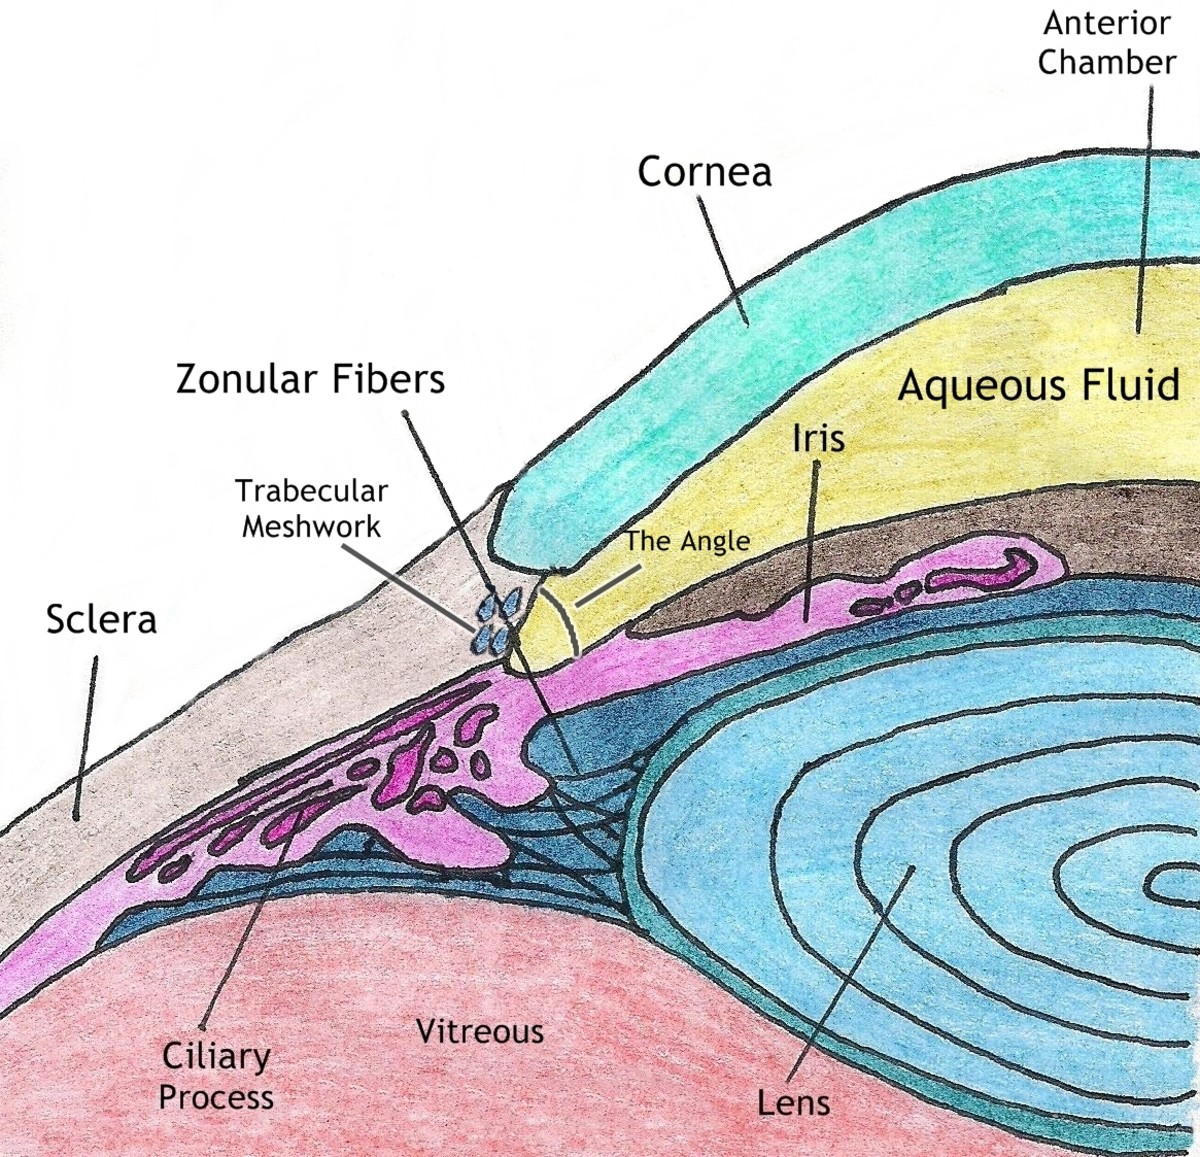 The anatomy of the lens showing zonular fibers.